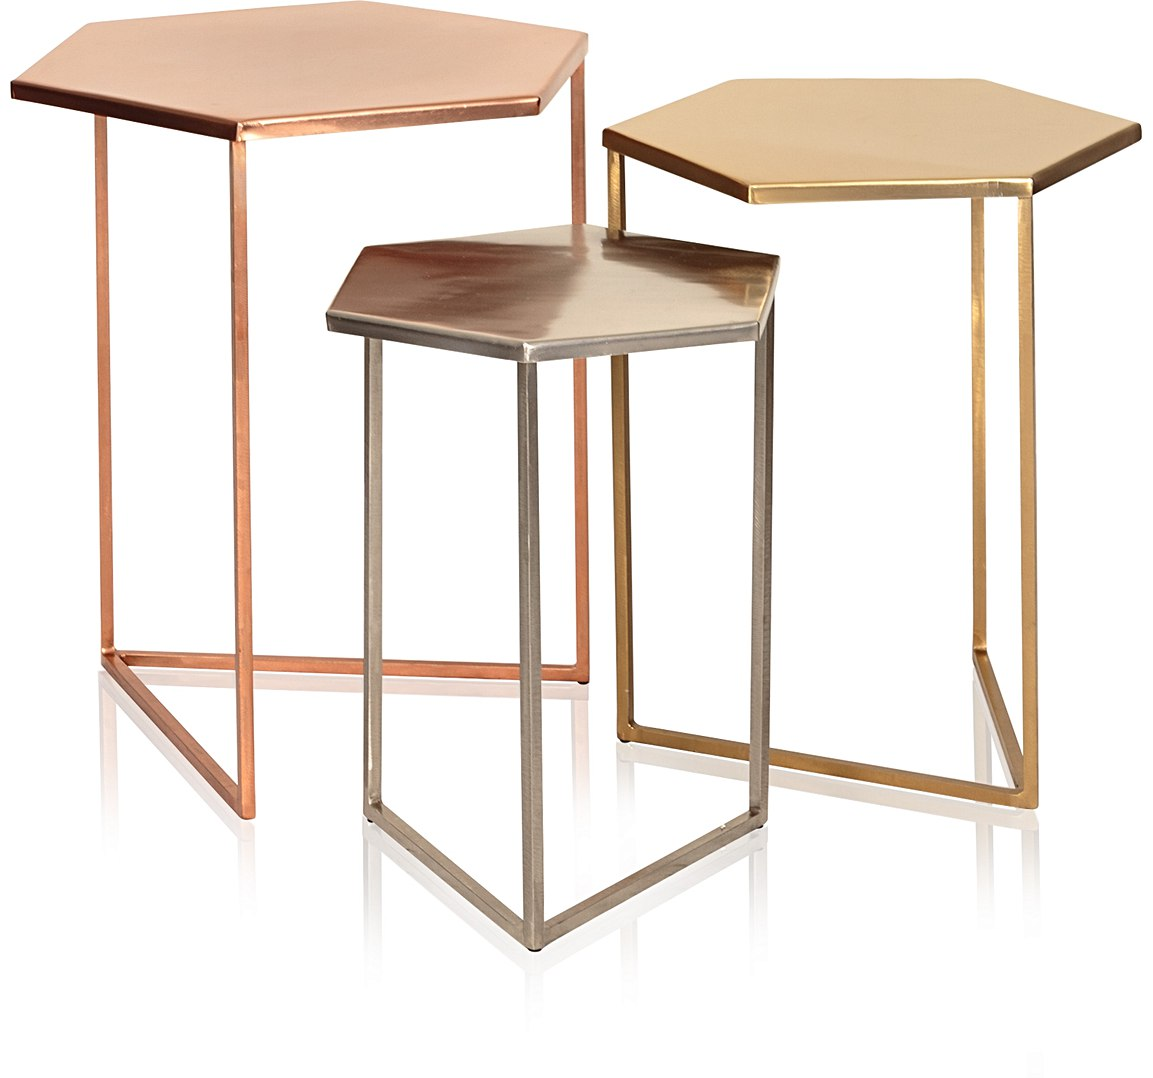 1041200_oliver-bonas_homeware_set-of-three-hexagon-metallic-nesting-tables_2.jpg